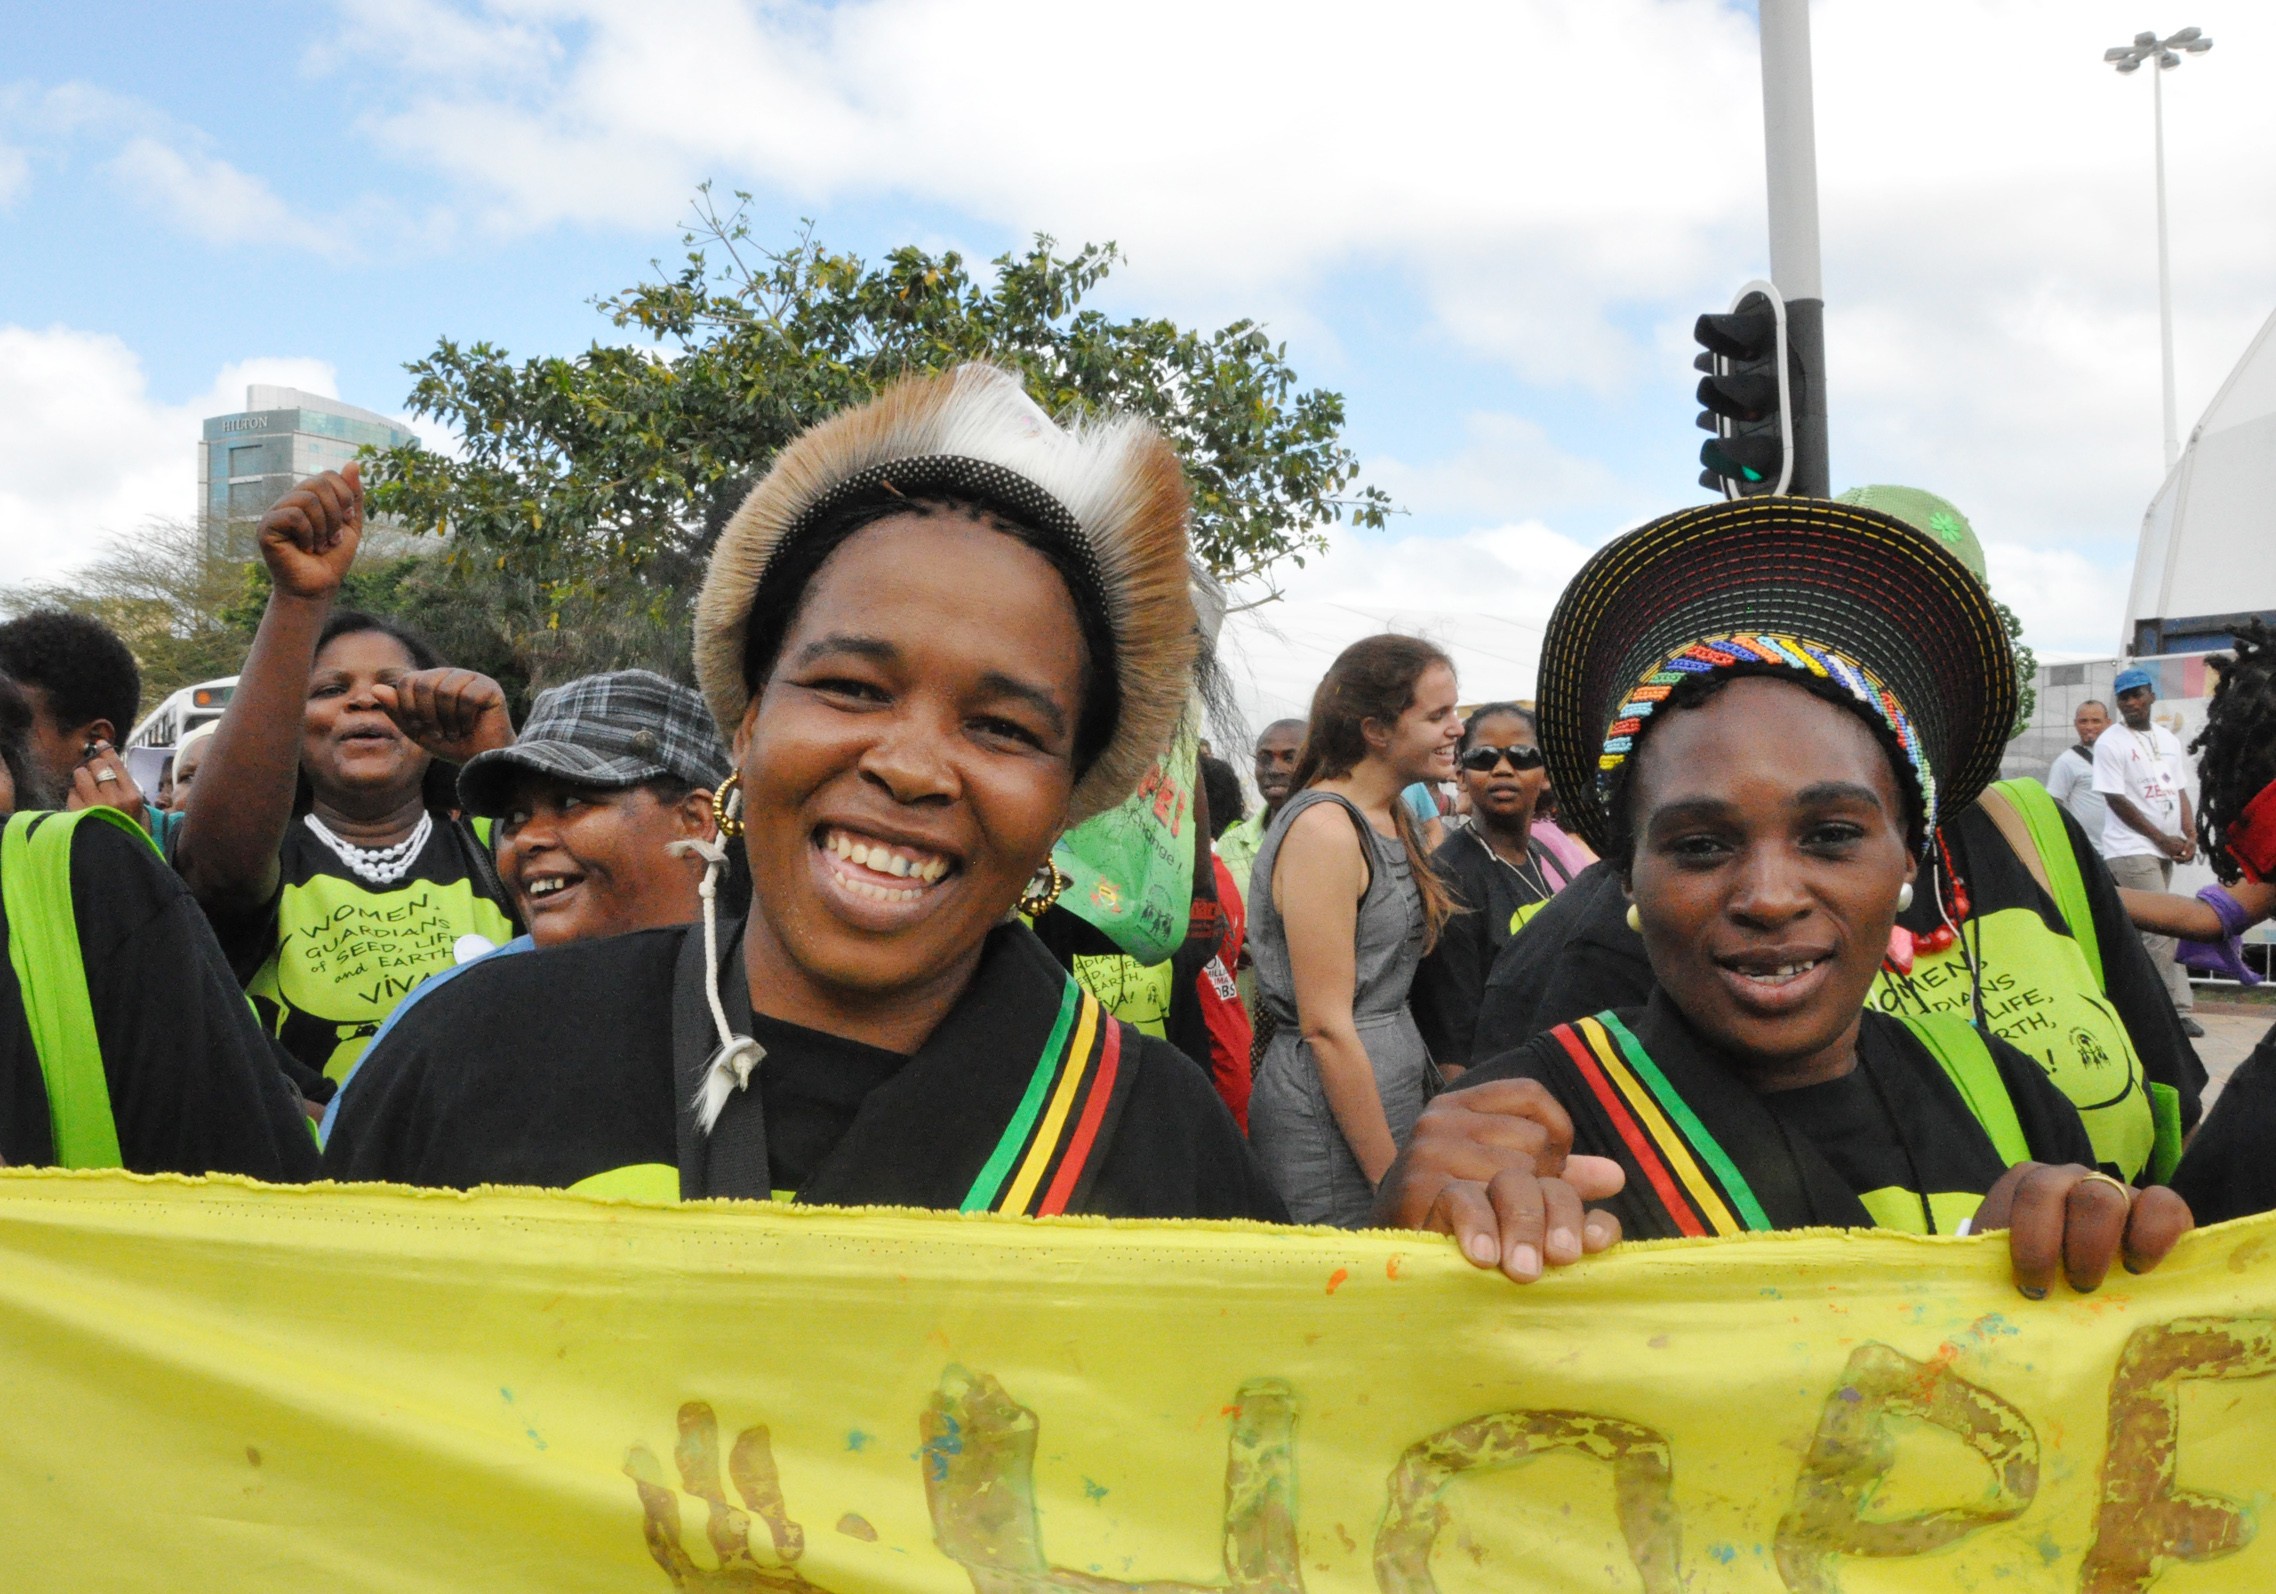 Women from the Rural Women's Assembly take to the streets in Durban, South Africa, Dec 2011